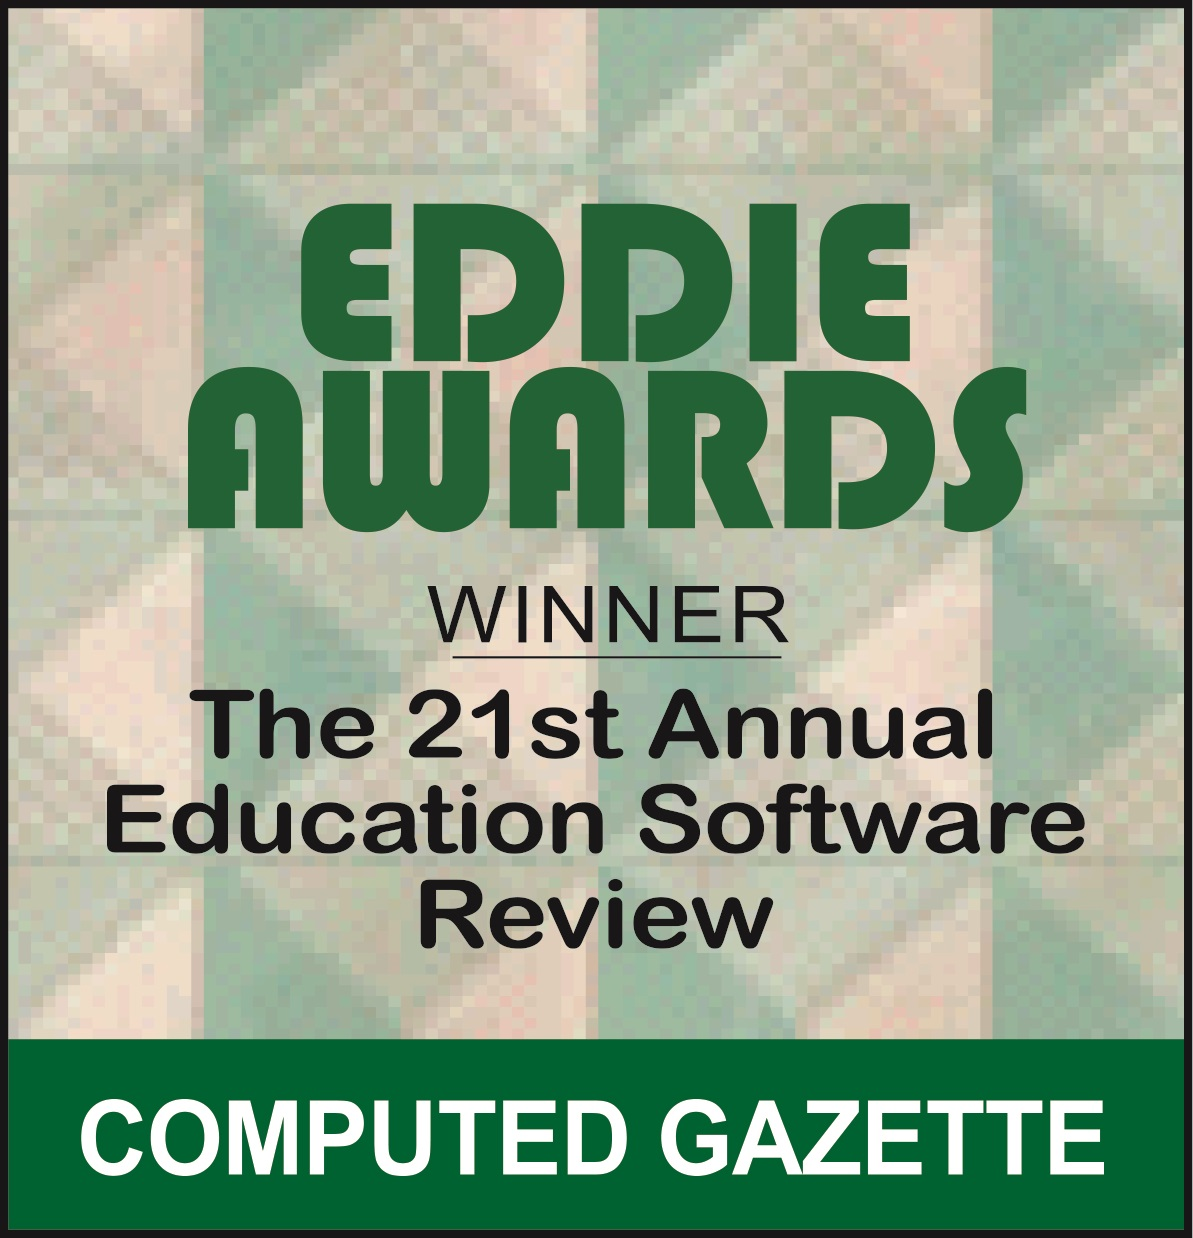 Eddie Award Winner